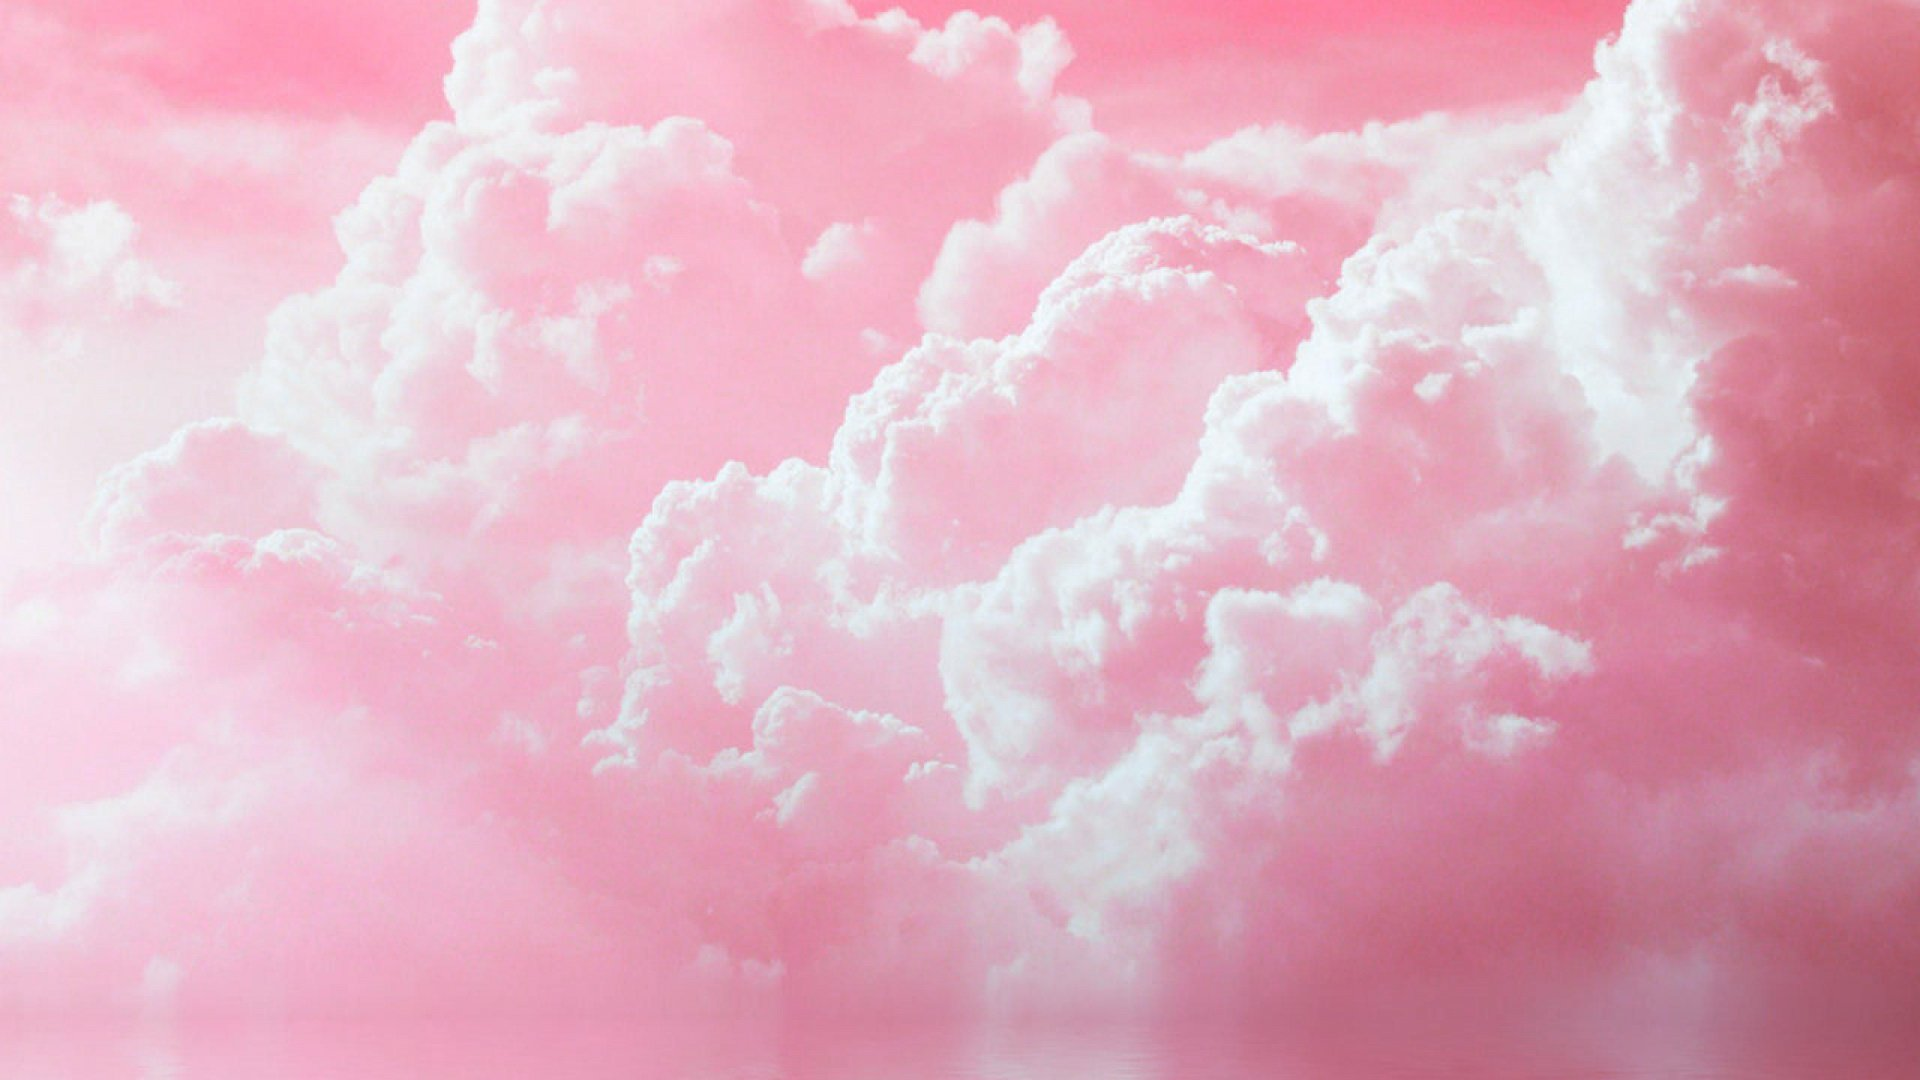 Pink Sky HD Desktop Wallpaper